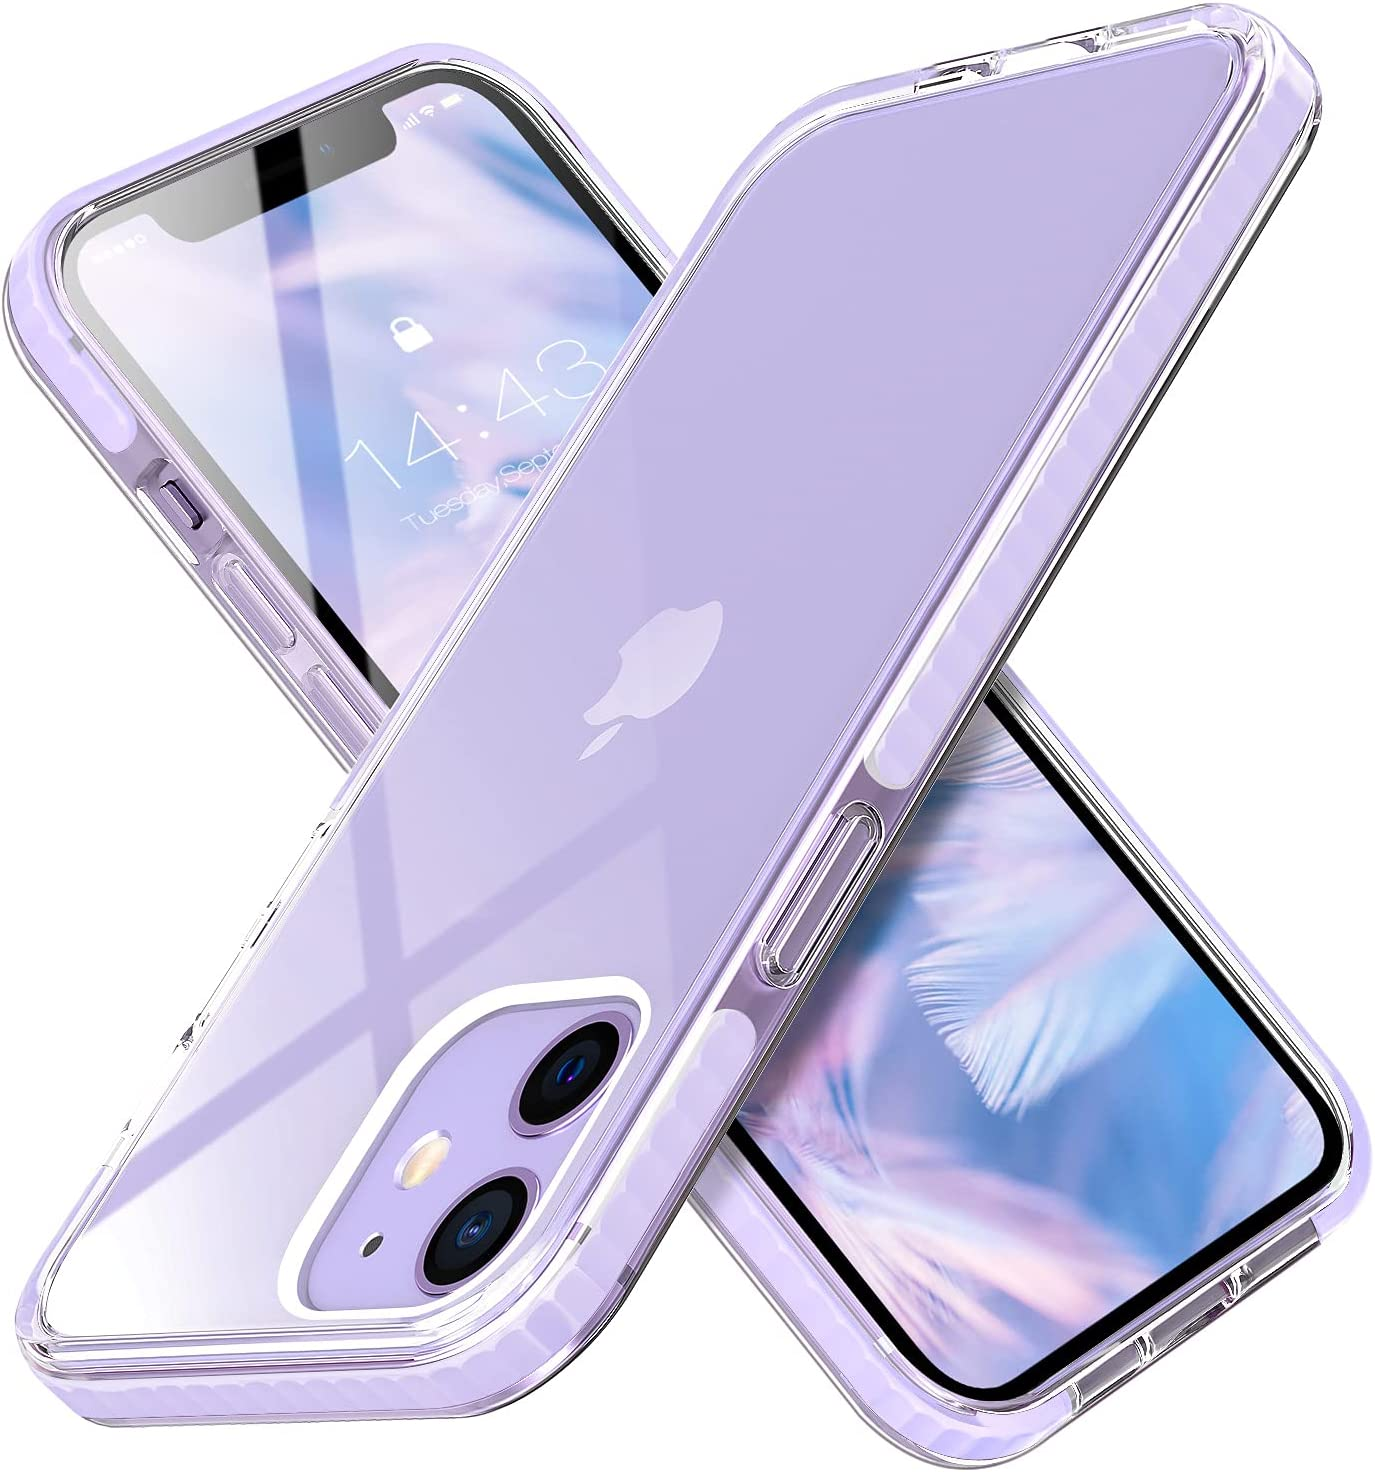 MATEPROX Compatible with iPhone 12 Pro Case and iPhone 12 Cases Clear Thin Slim Crystal Transparent Cover Shockproof Bumper Case(Purple)